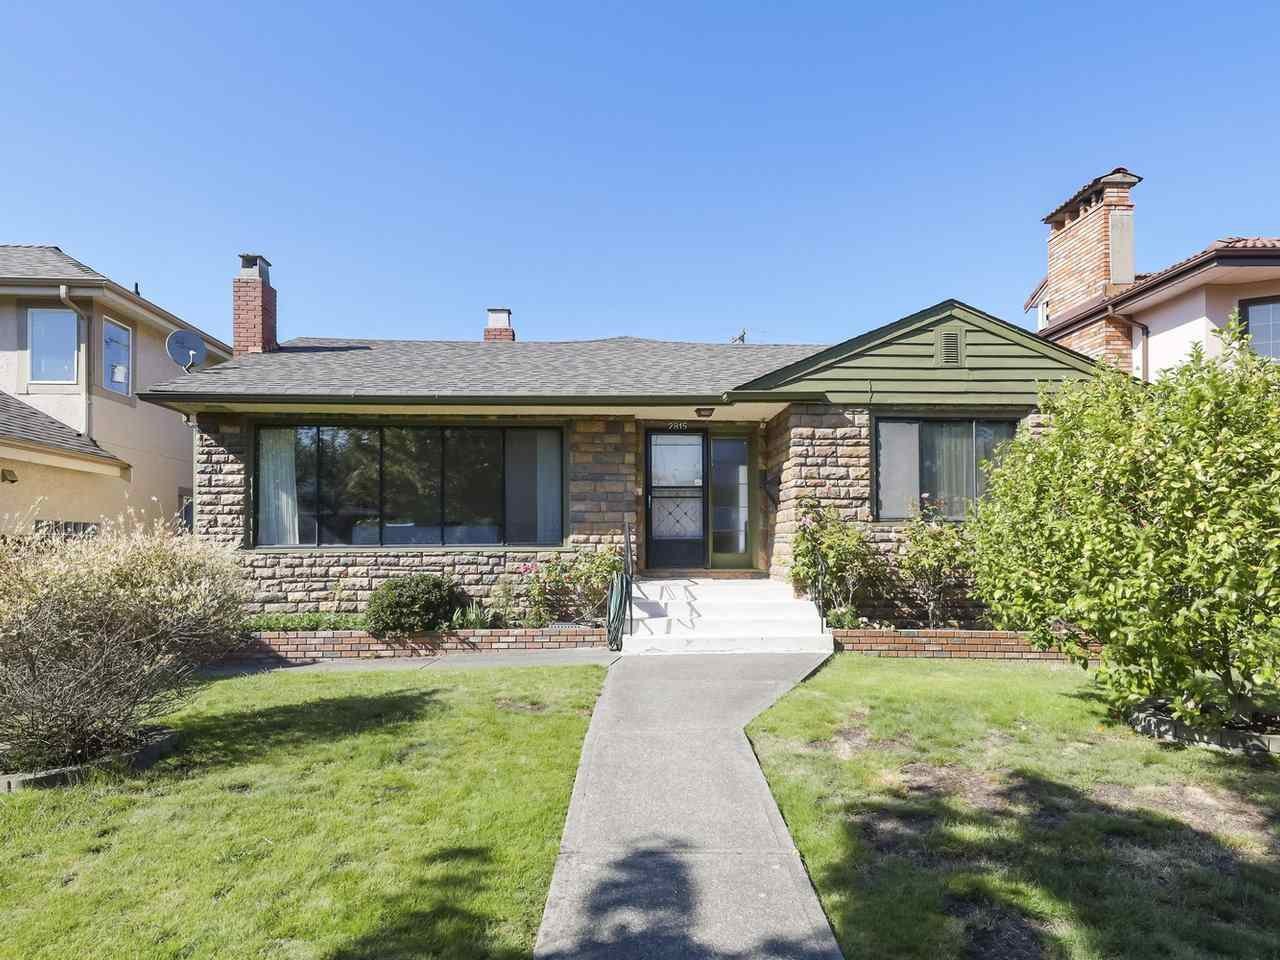 Main Photo: 2815 E 3RD Avenue in Vancouver: Renfrew VE House for sale (Vancouver East)  : MLS®# R2487598